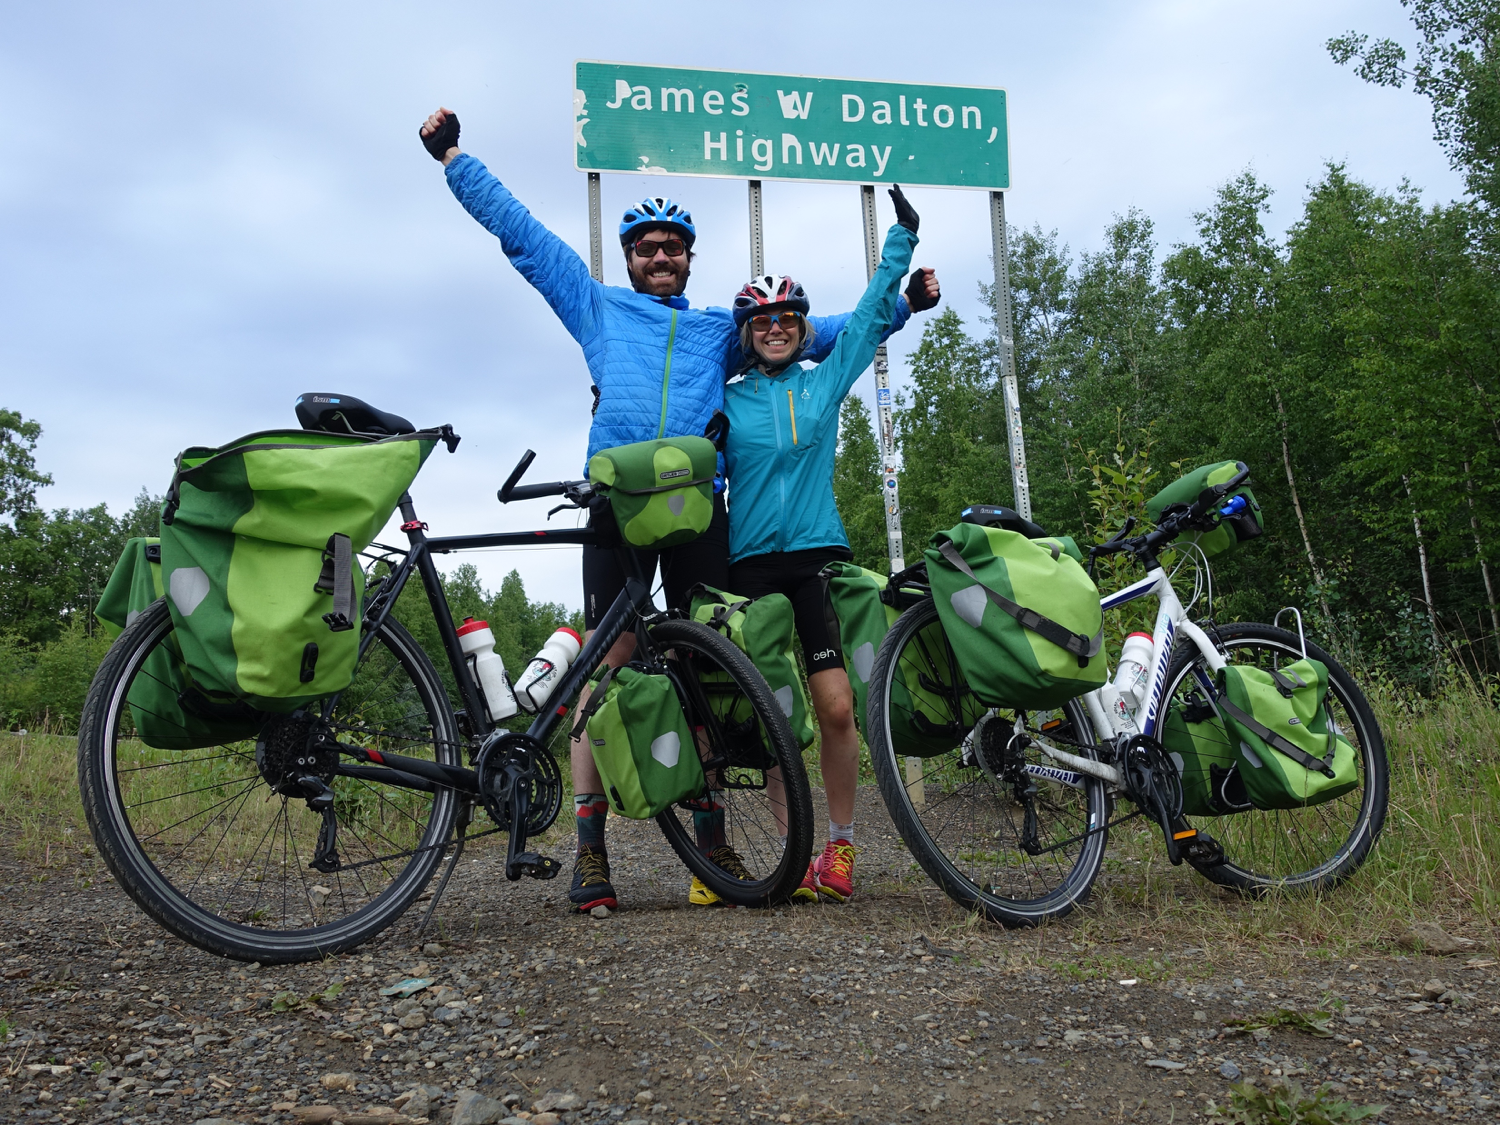 At the start of the Dalton Highway